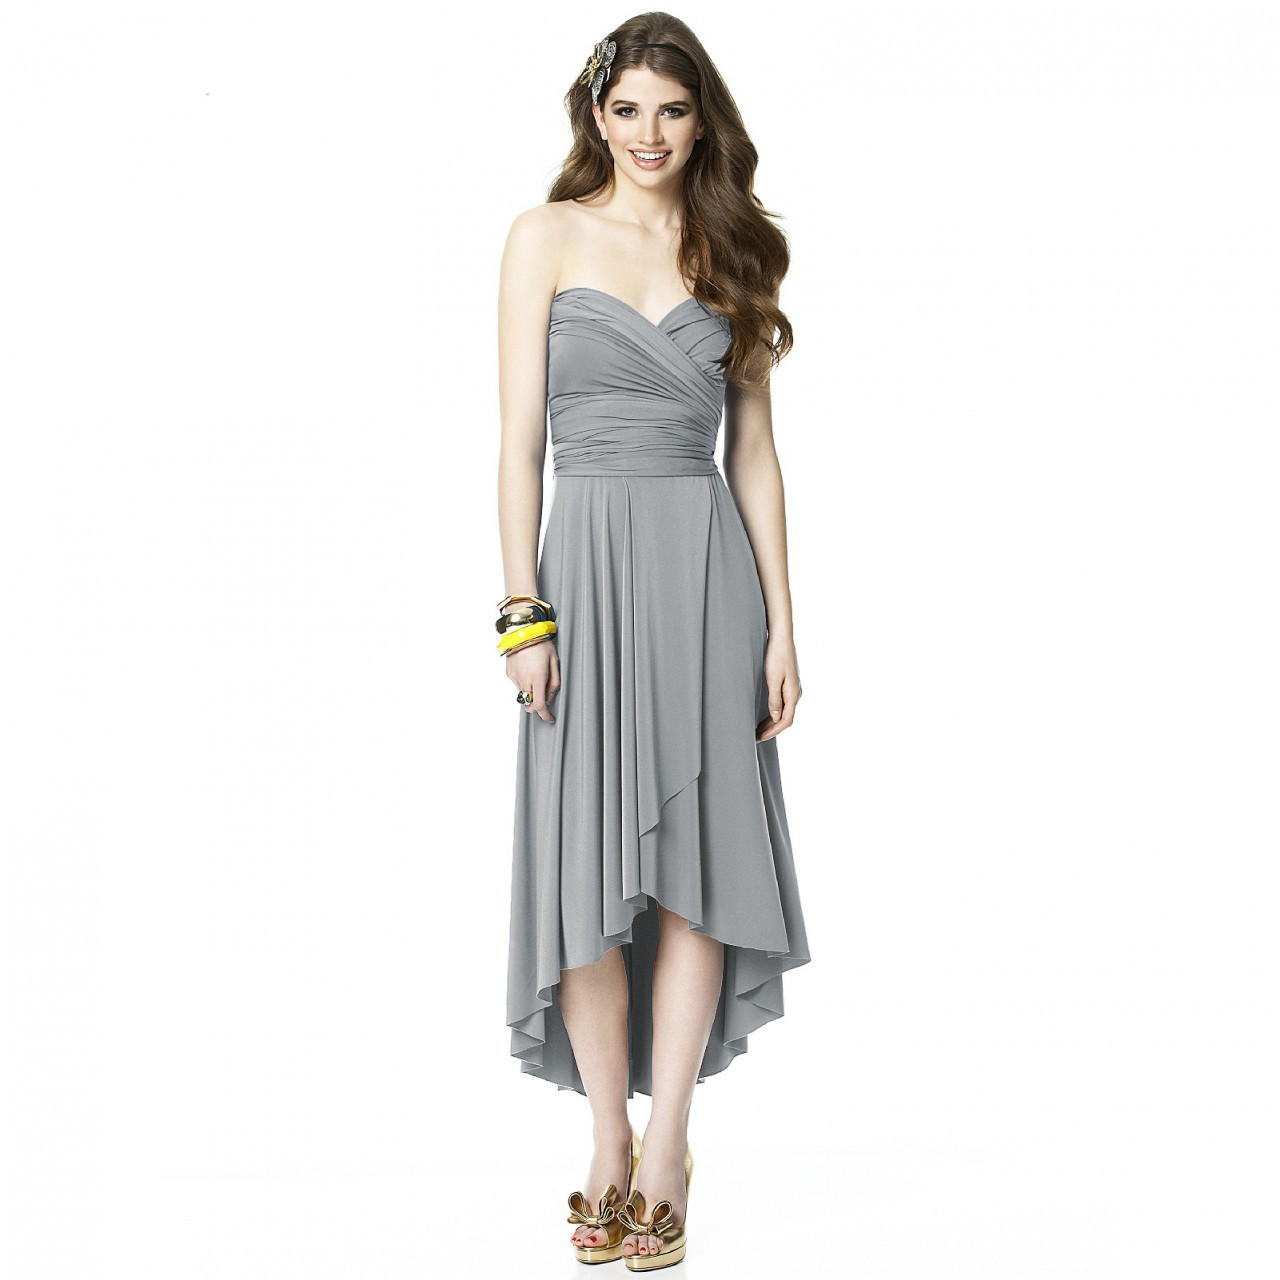 Alyse The Twist Convertible Dress With Faux Wrap Skirt